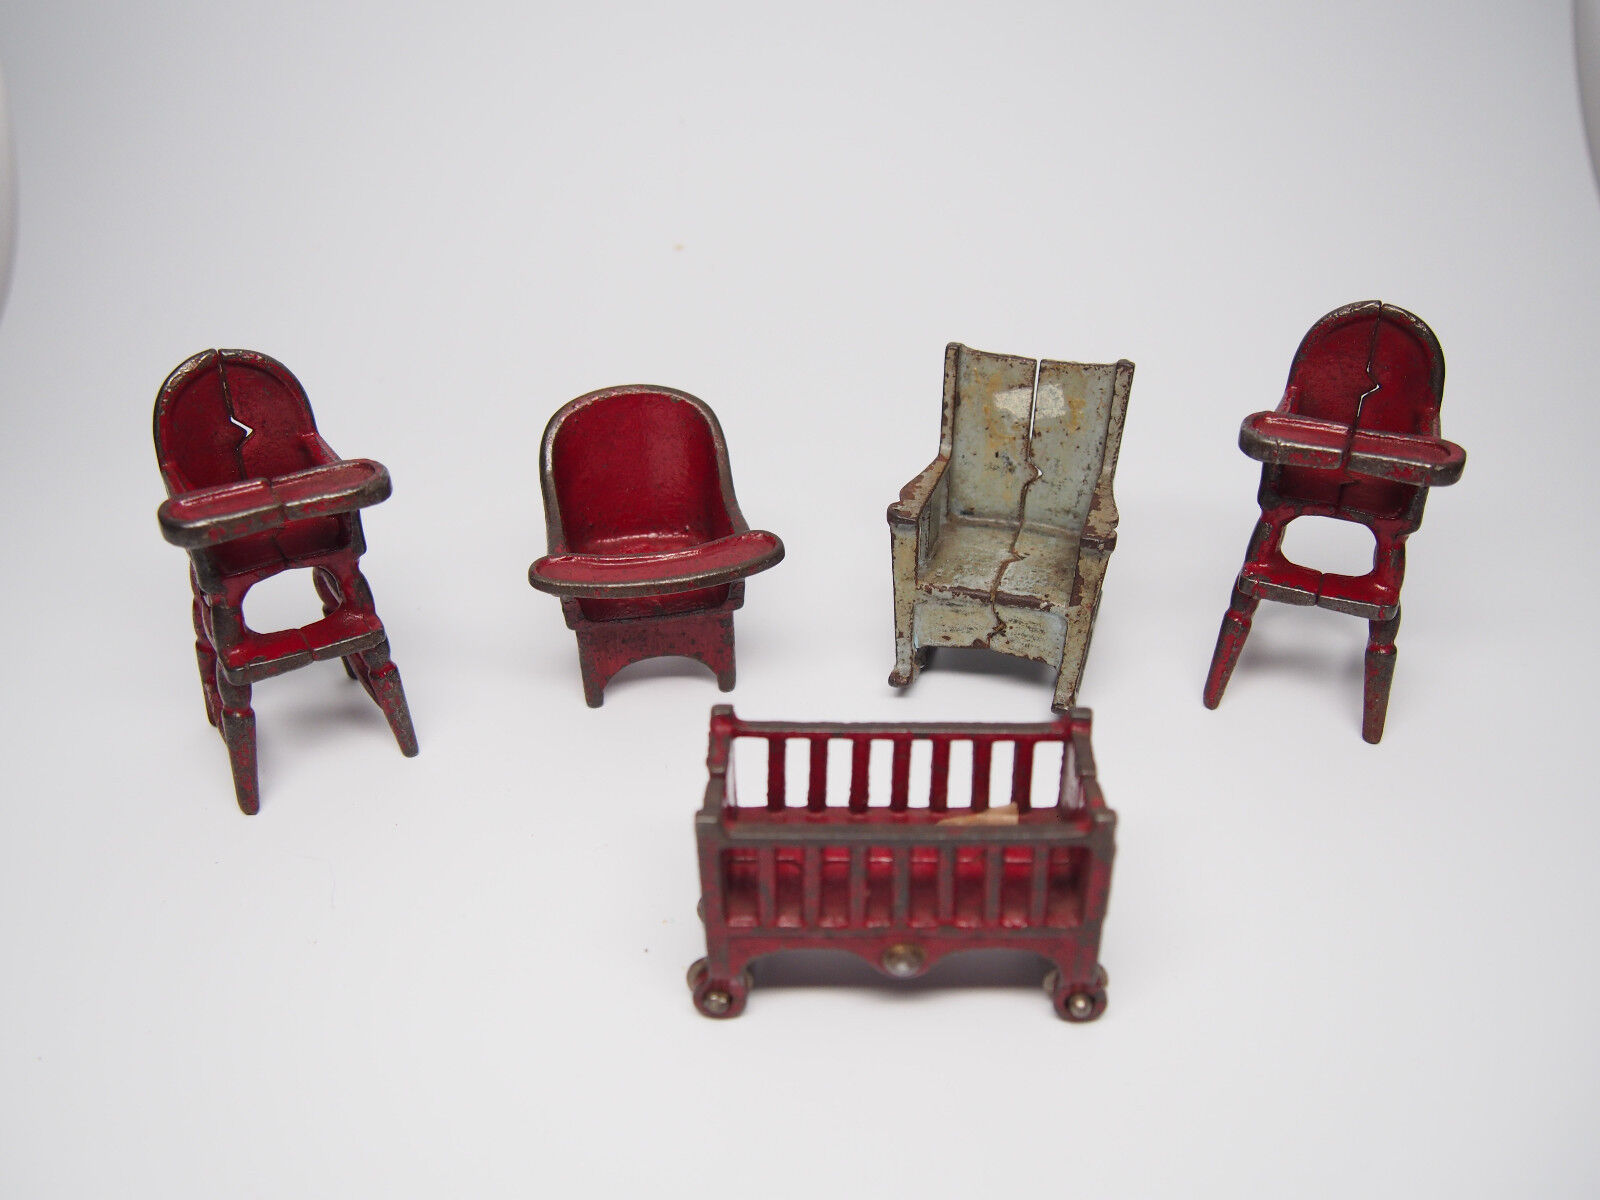 Vintage Cast Iron Doll House Furniture Lot of 5 Pieces ChairsCribHighchairs